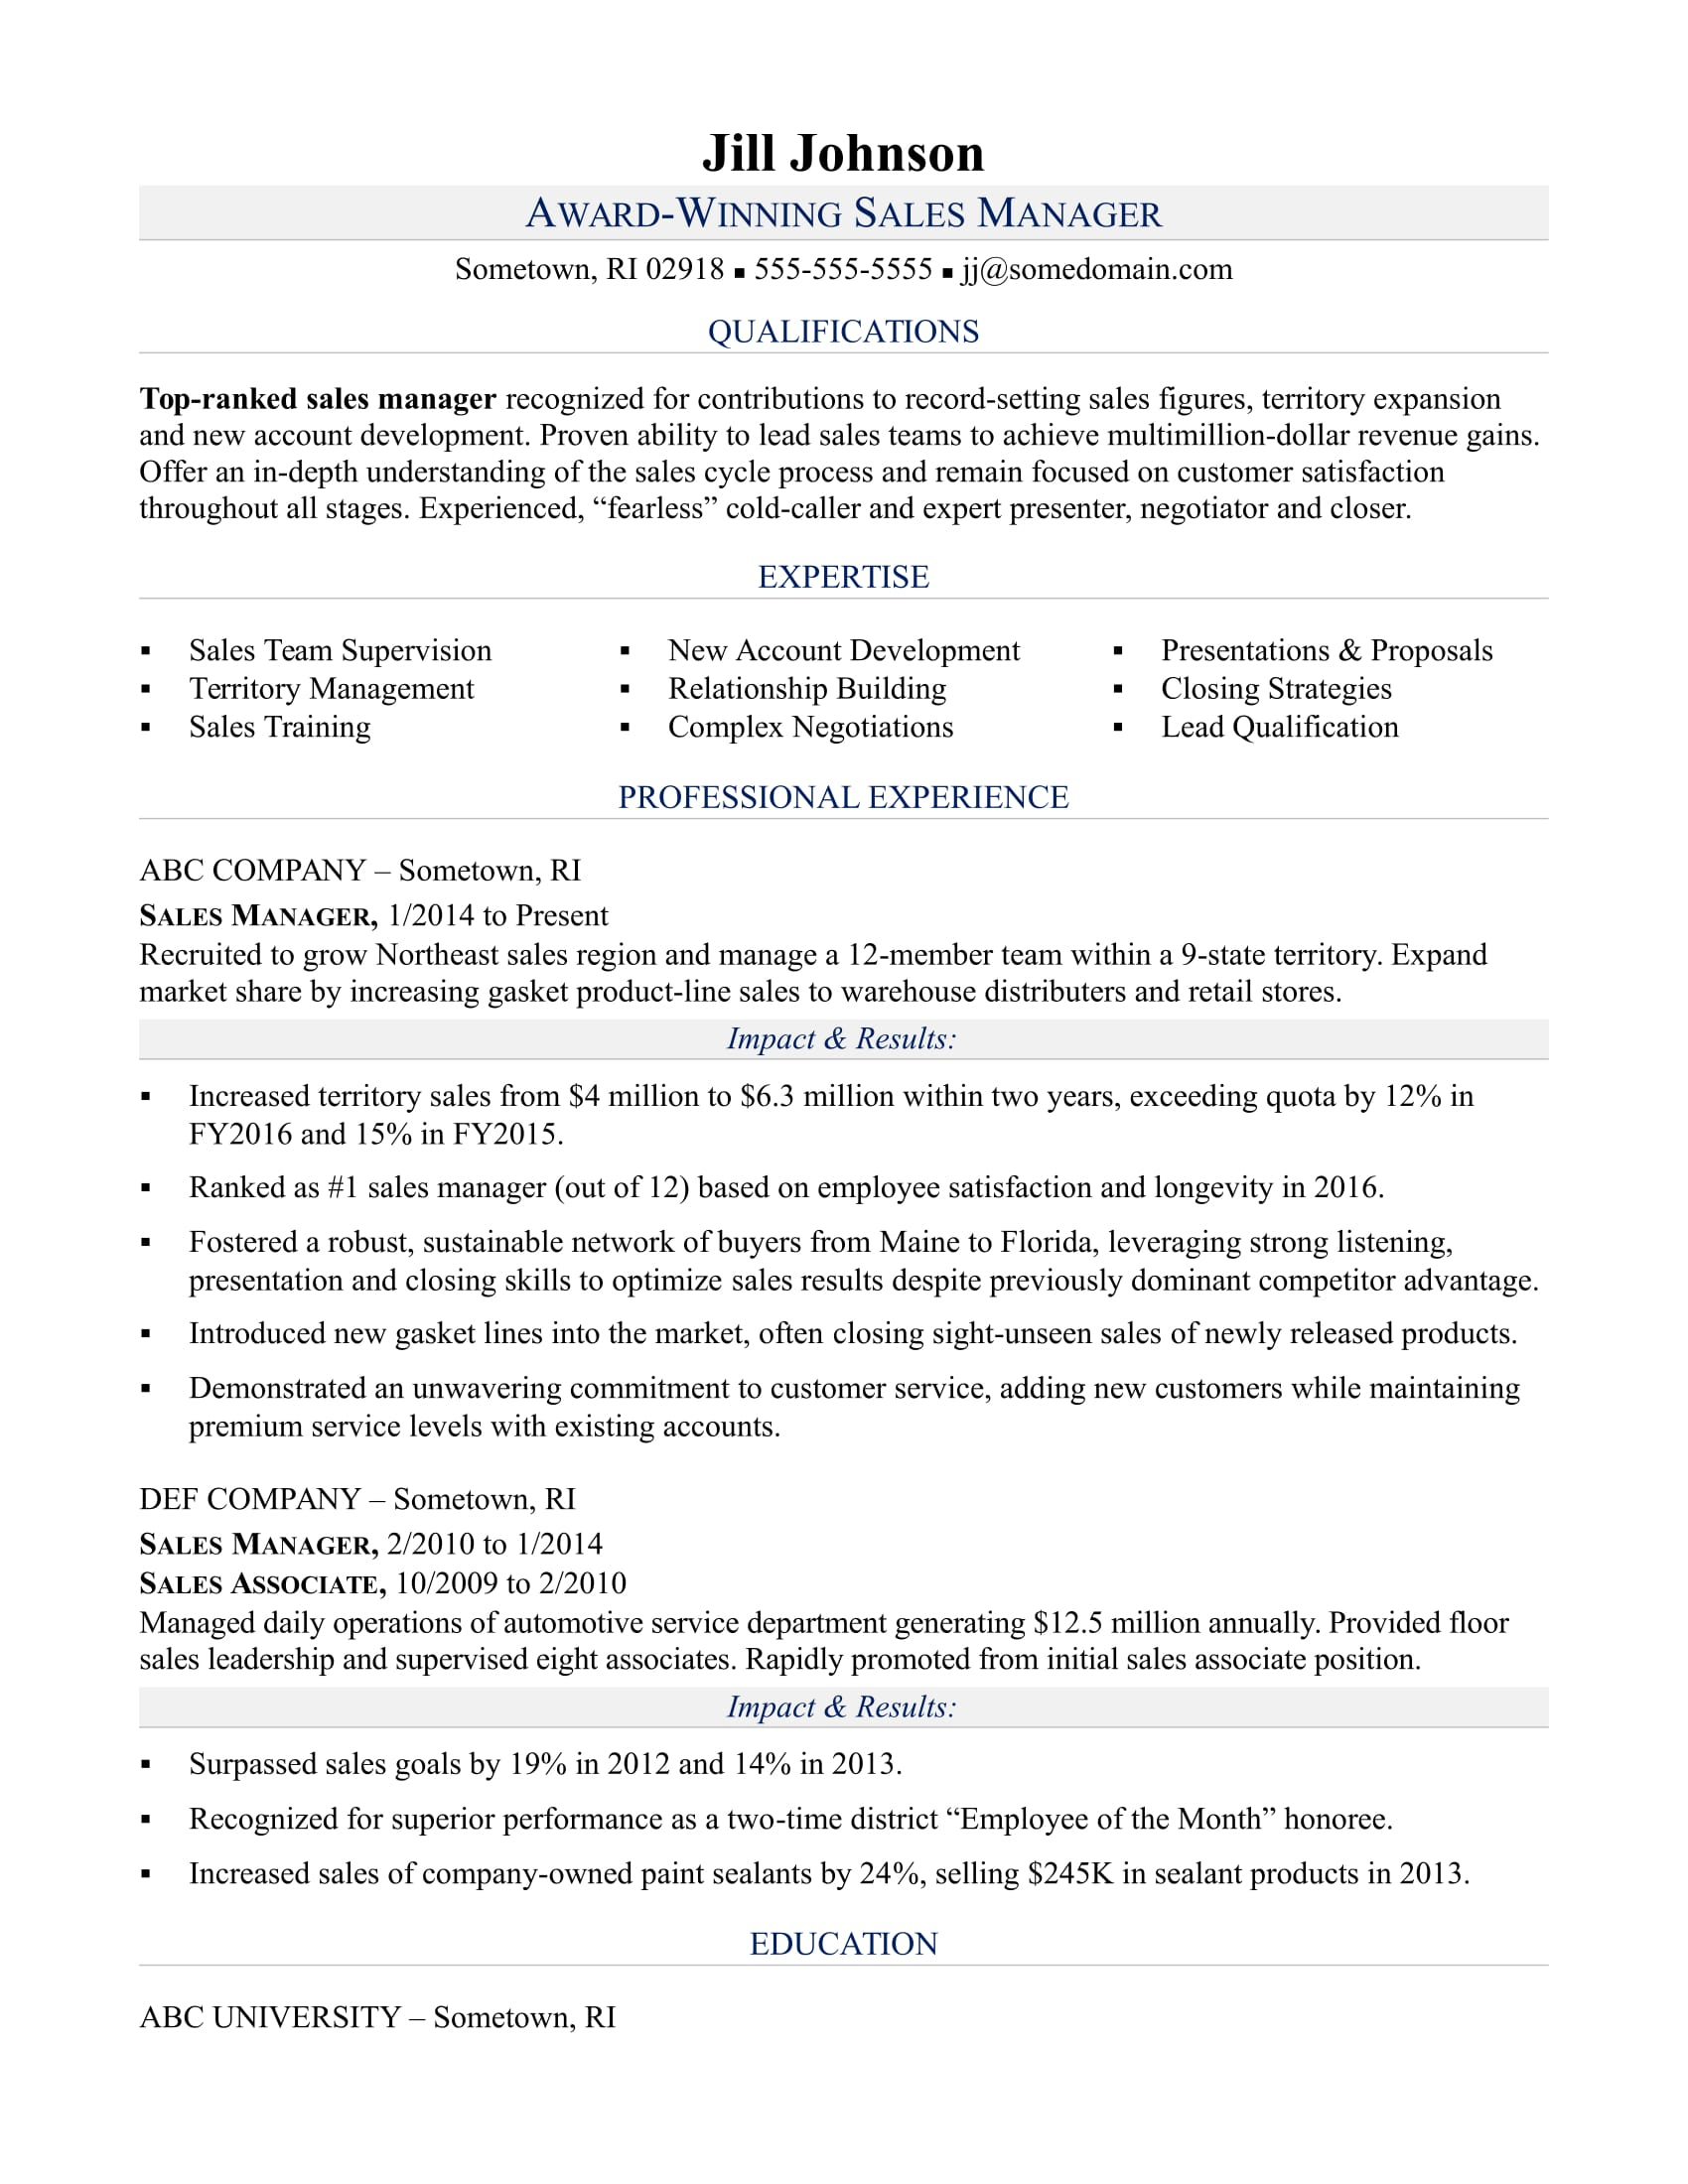 Sample resume for a sales manager